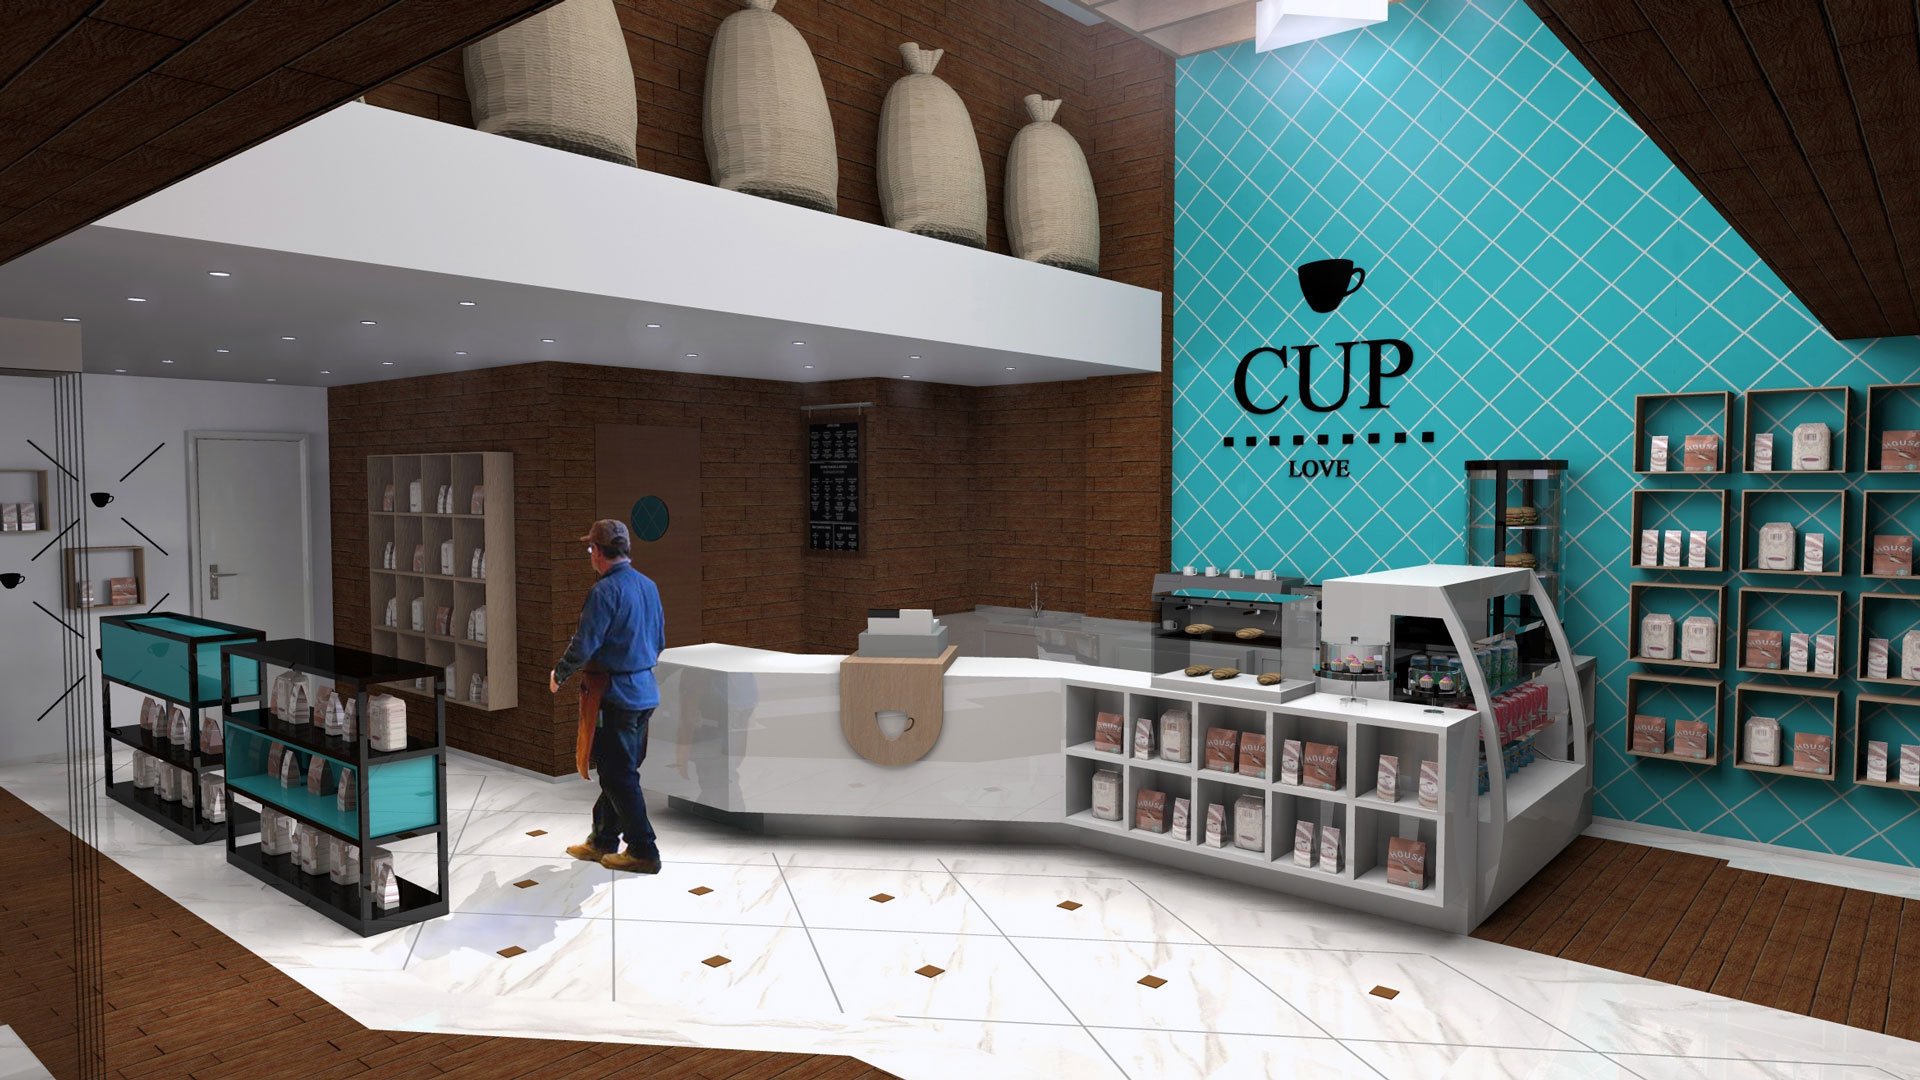 CUP LOVE - CAFE - ΚΗΦΙΣΙΑ - CUP LOVE CAFE - KIFISIA